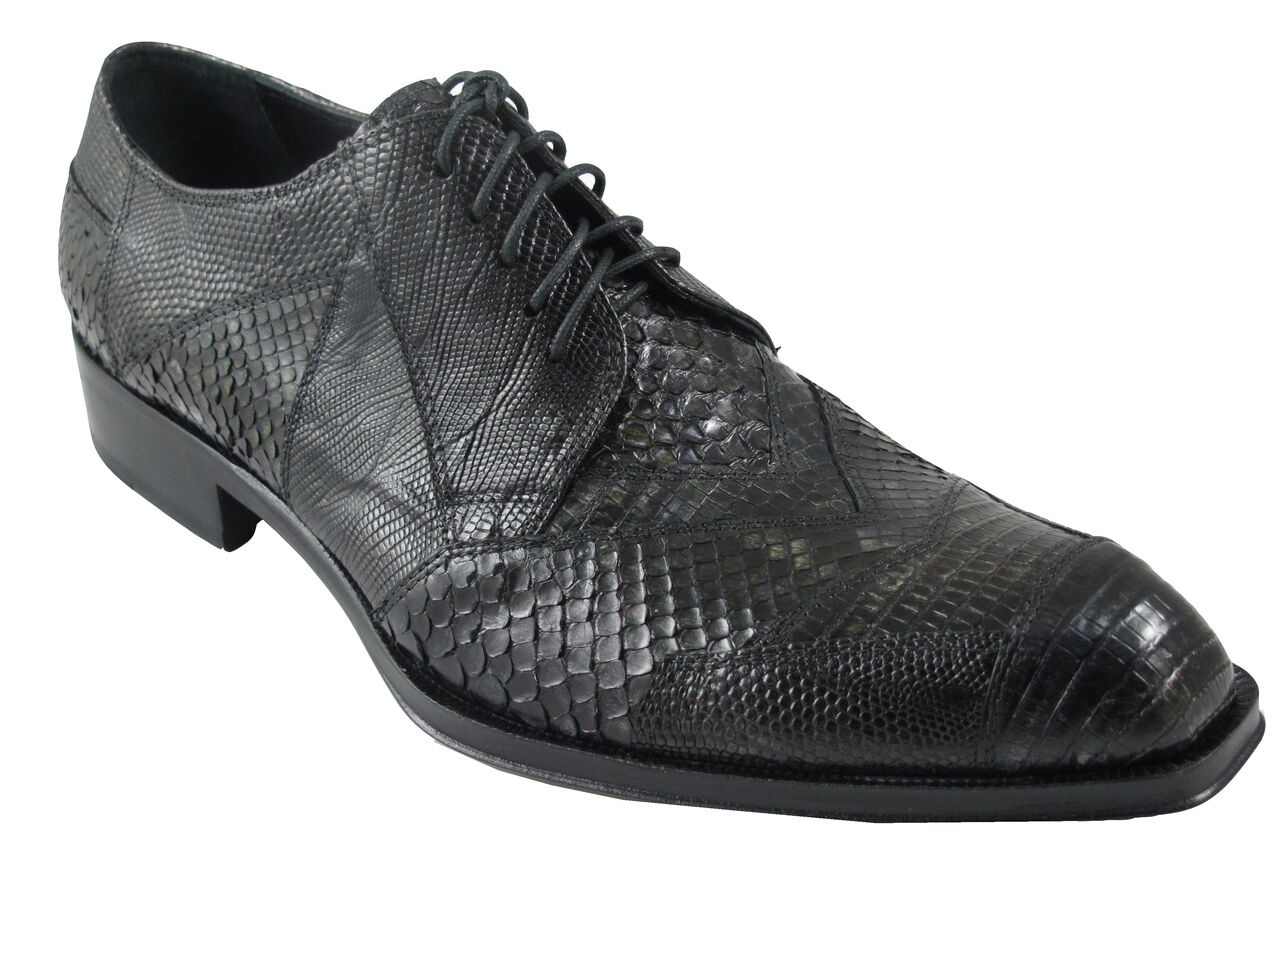 JO GHOST 1732M  Luxurious uomo scarpe EXOTIC SKIN LACE-UP OXFORDS